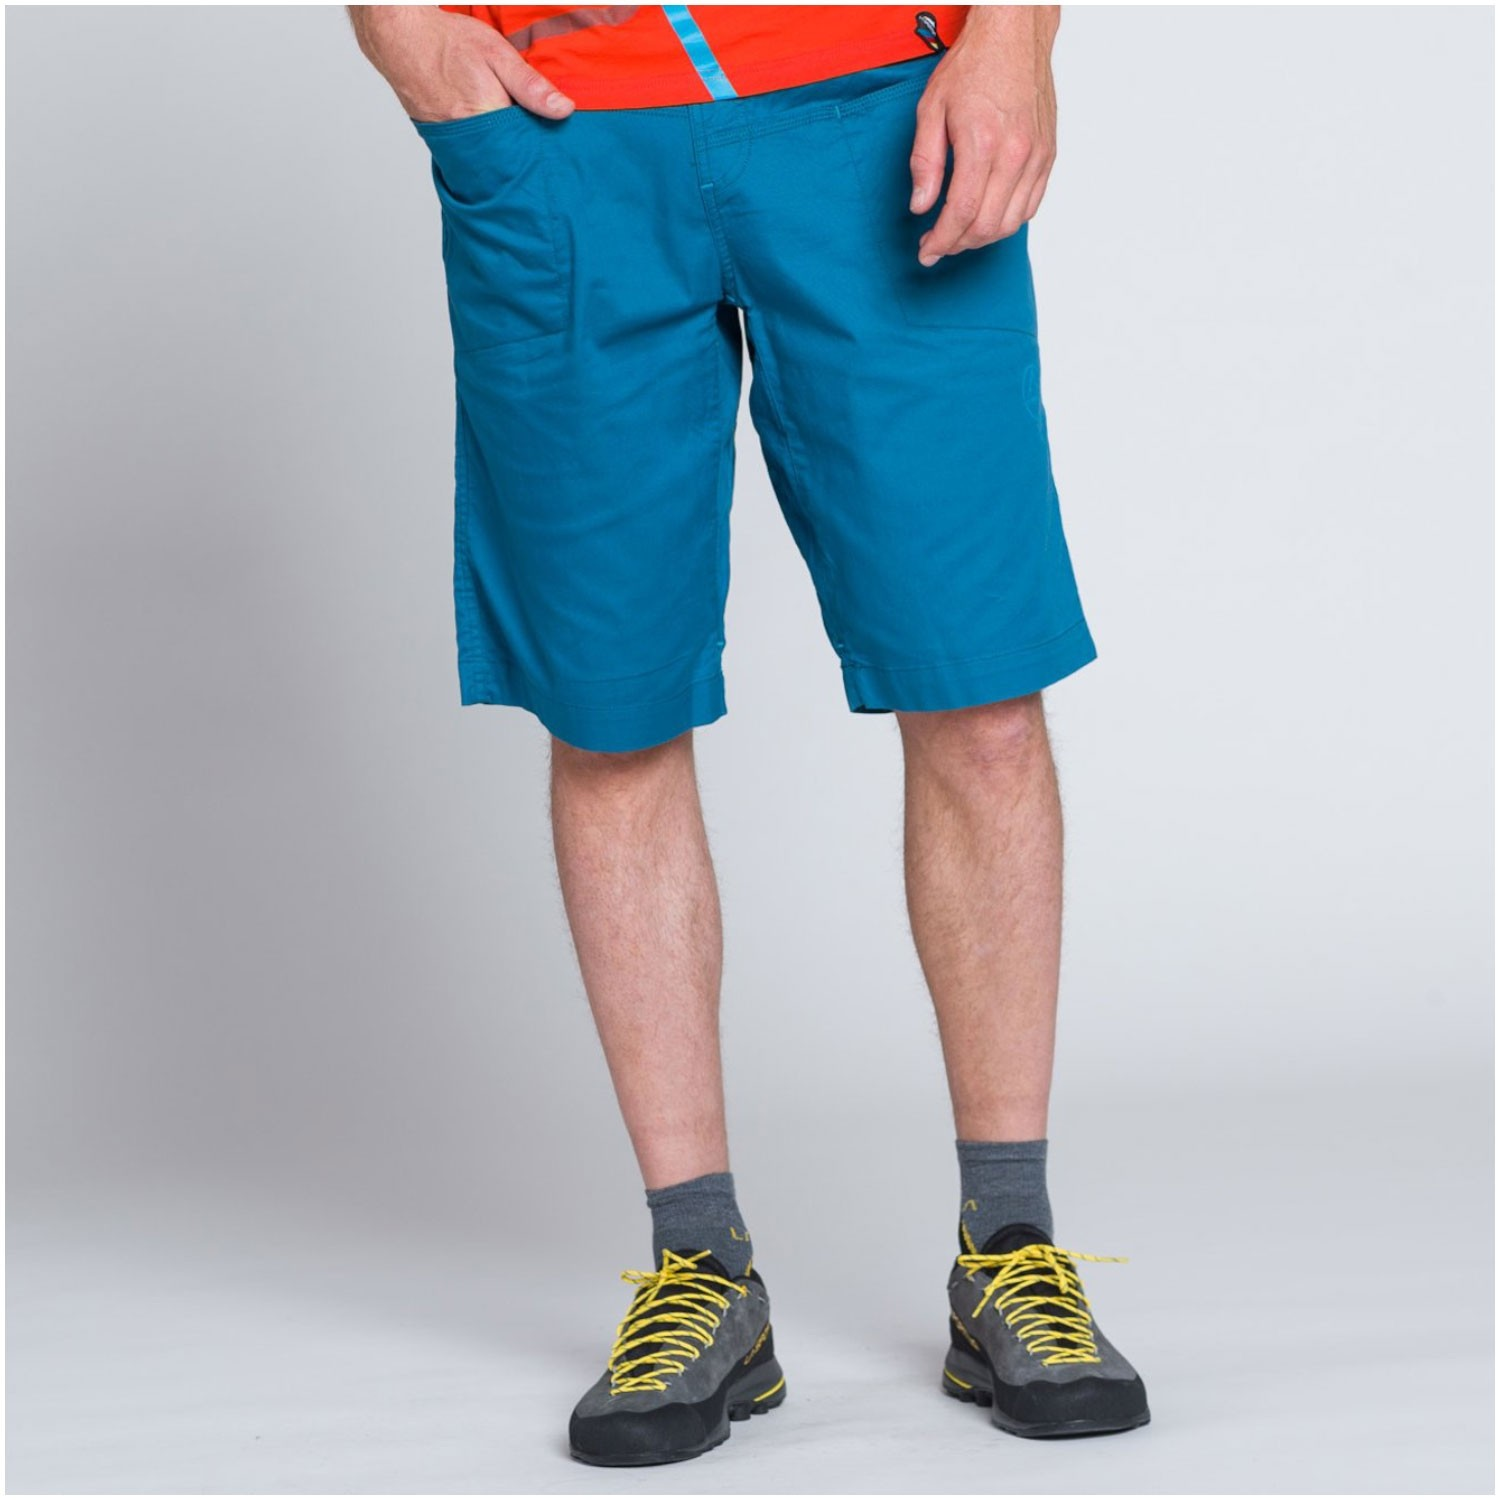 La Sportiva Levanto Men's Shorts - Lake